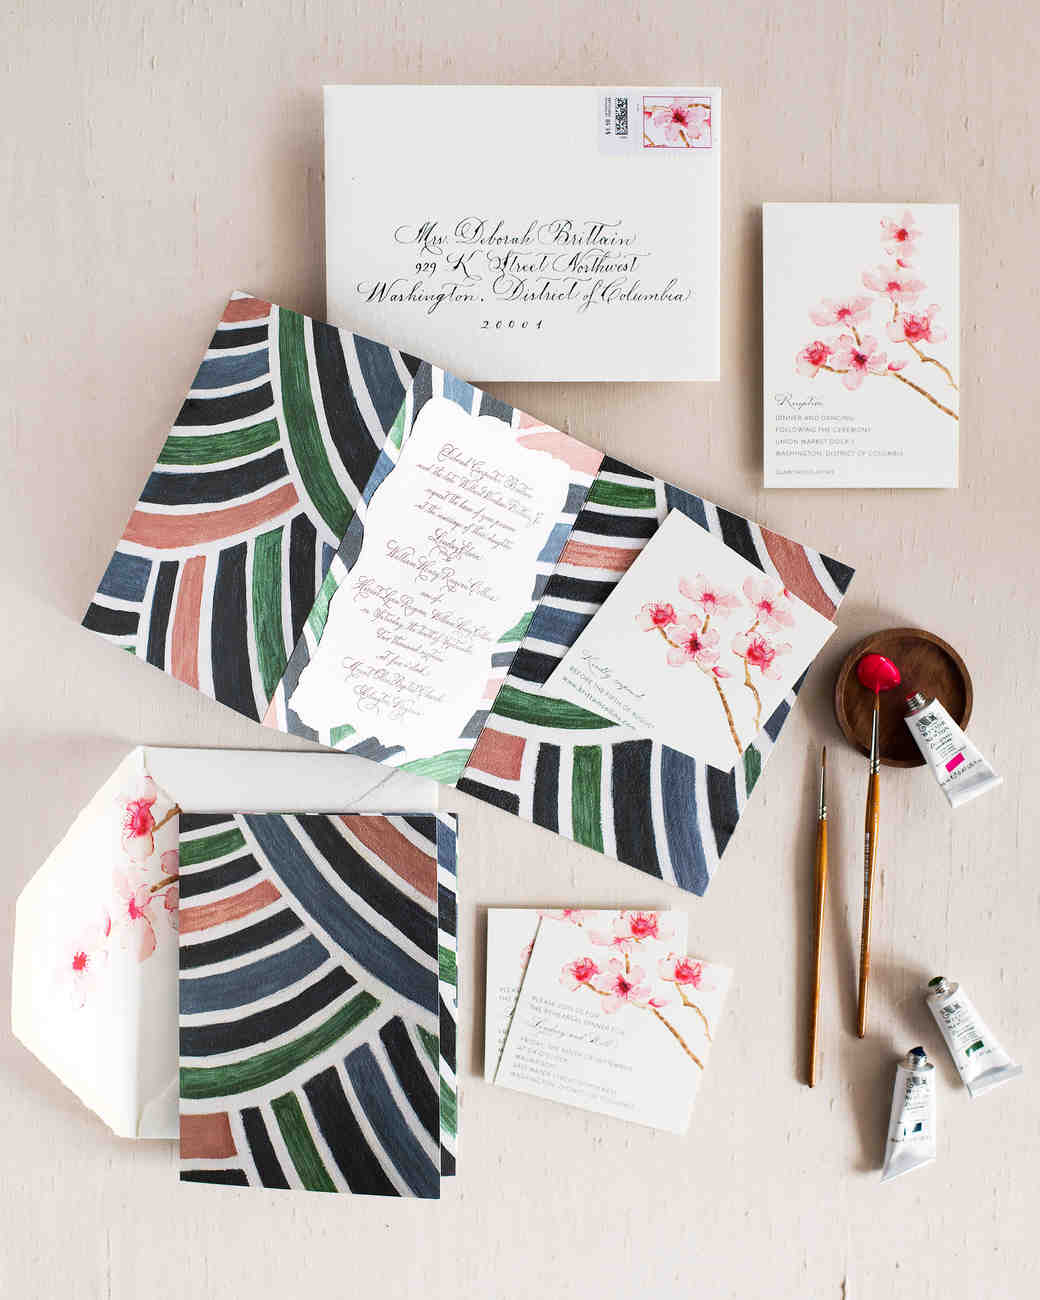 lindsey william wedding dc stationary